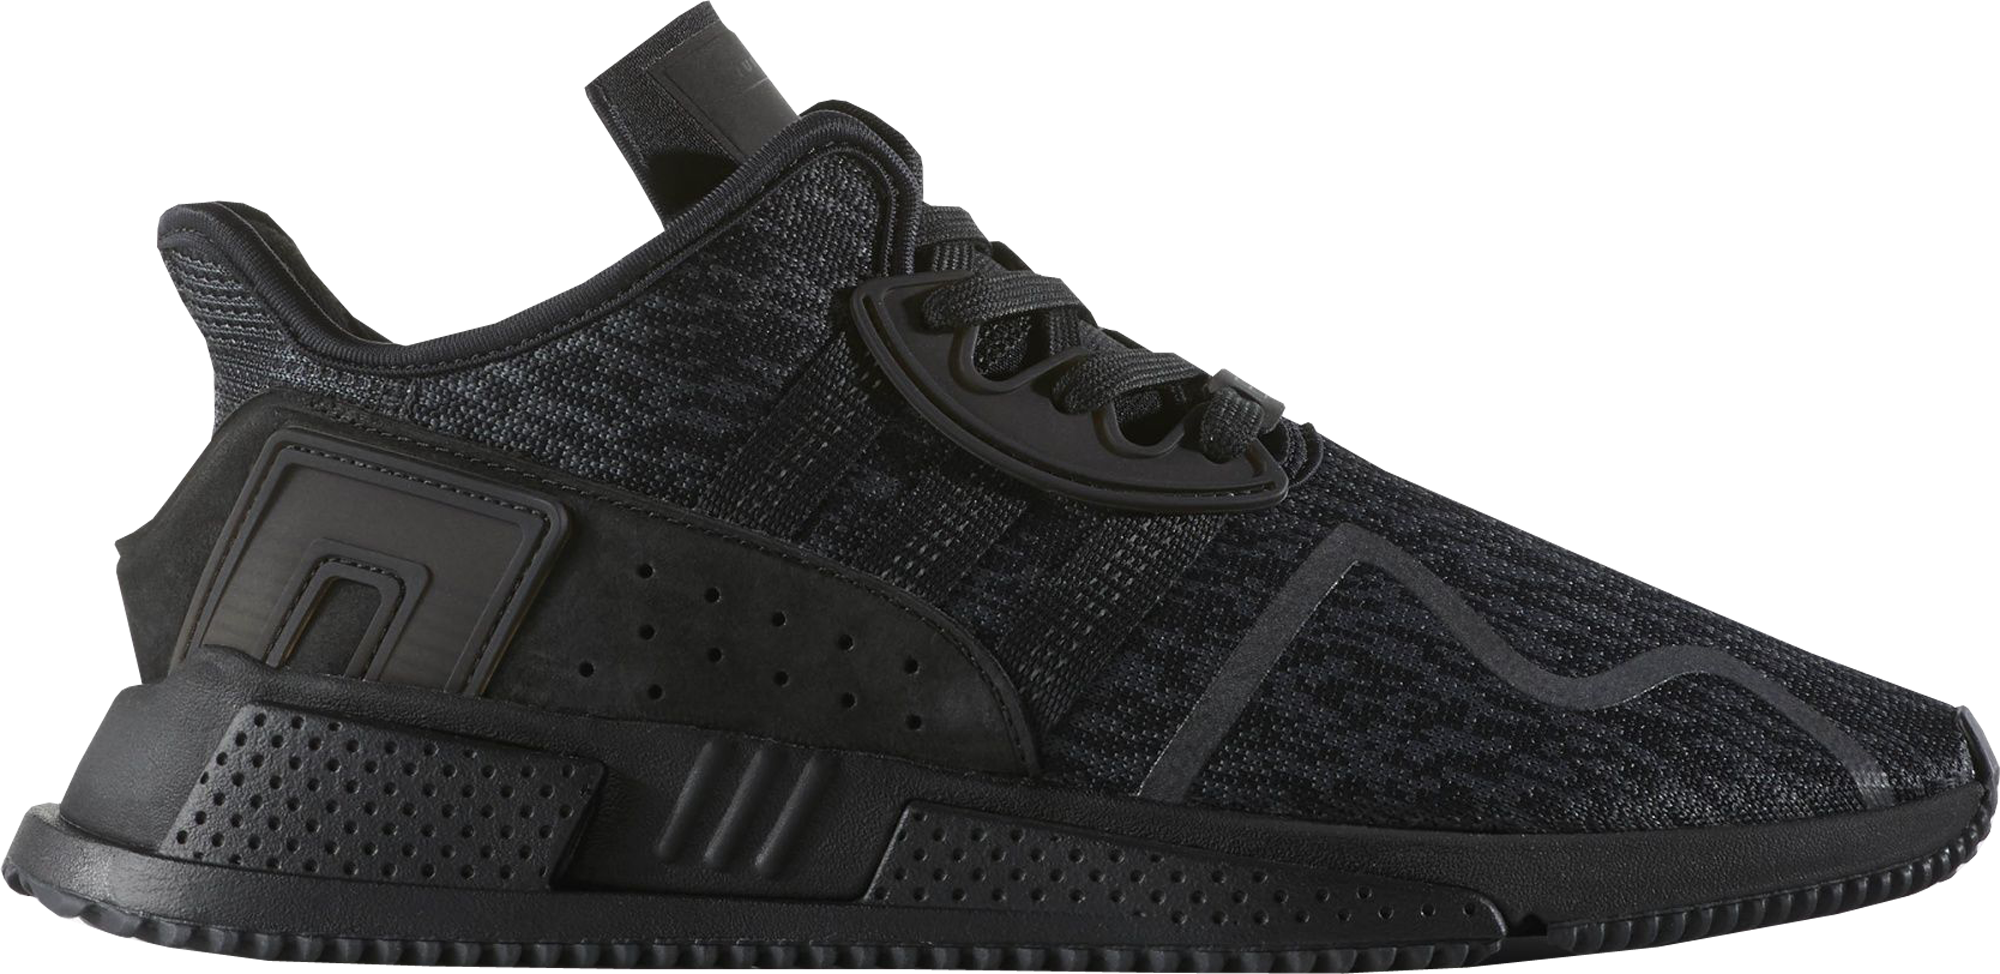 promo code 82652 4831d ... purchase adidas eqt cushion adv triple black fbe84 df06f